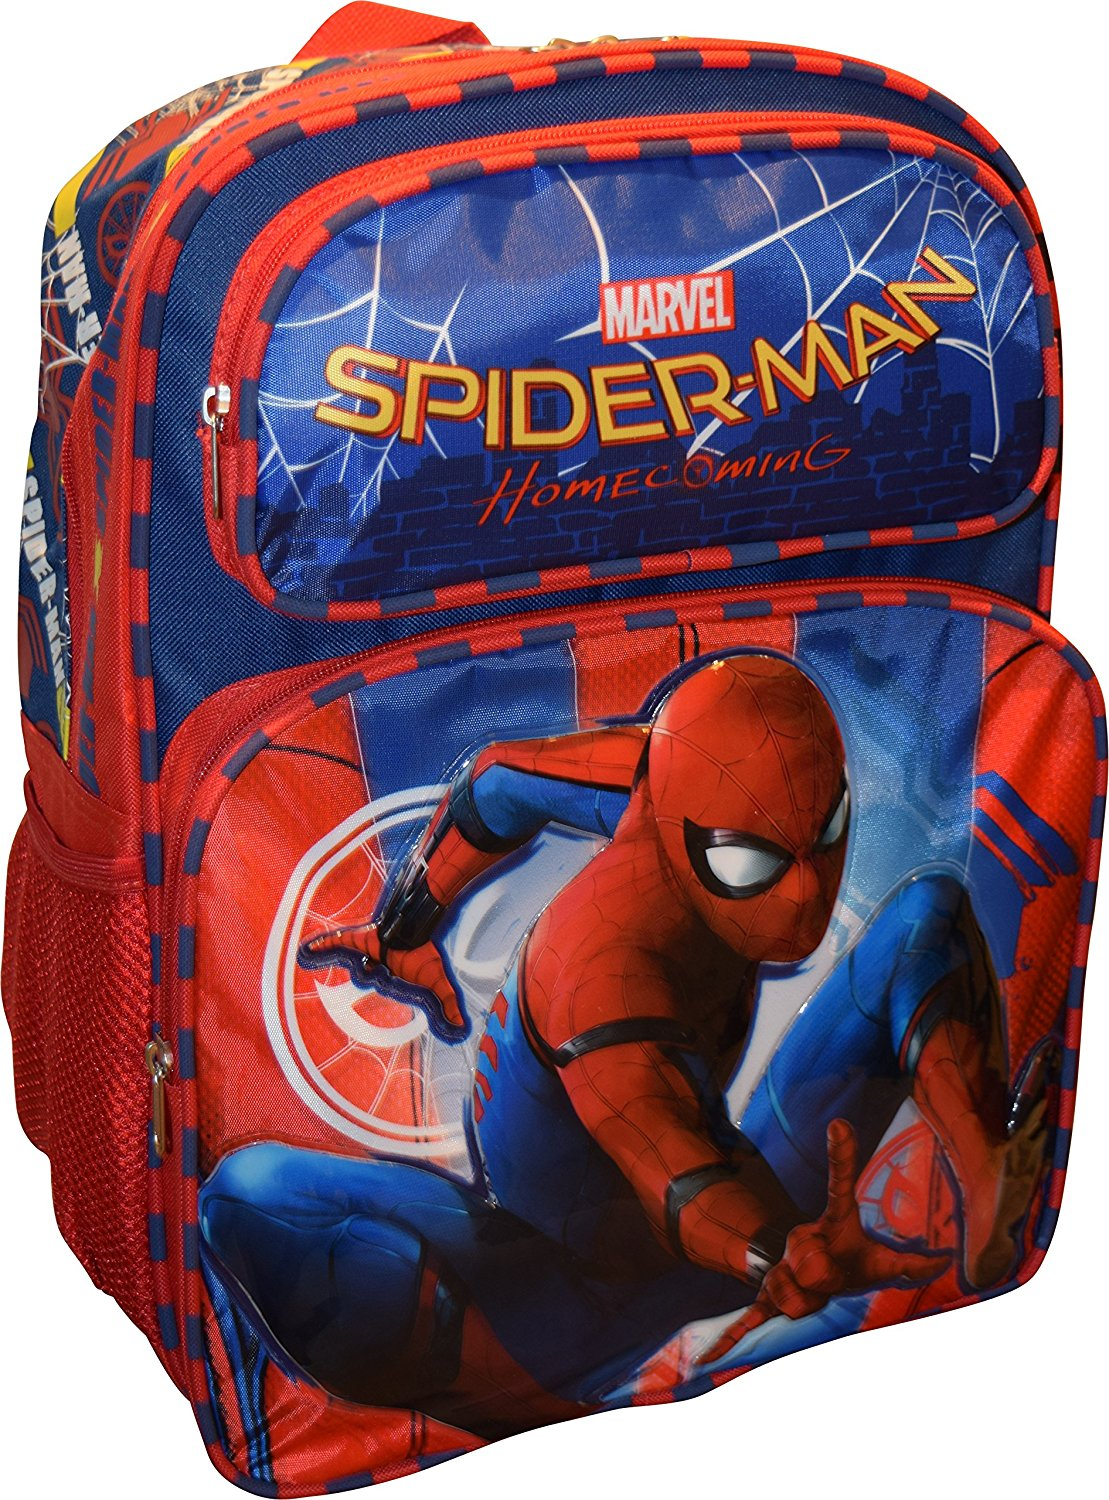 "Marvel Spiderman Home Coming Deluxe 16"" School Bag Backpack by"